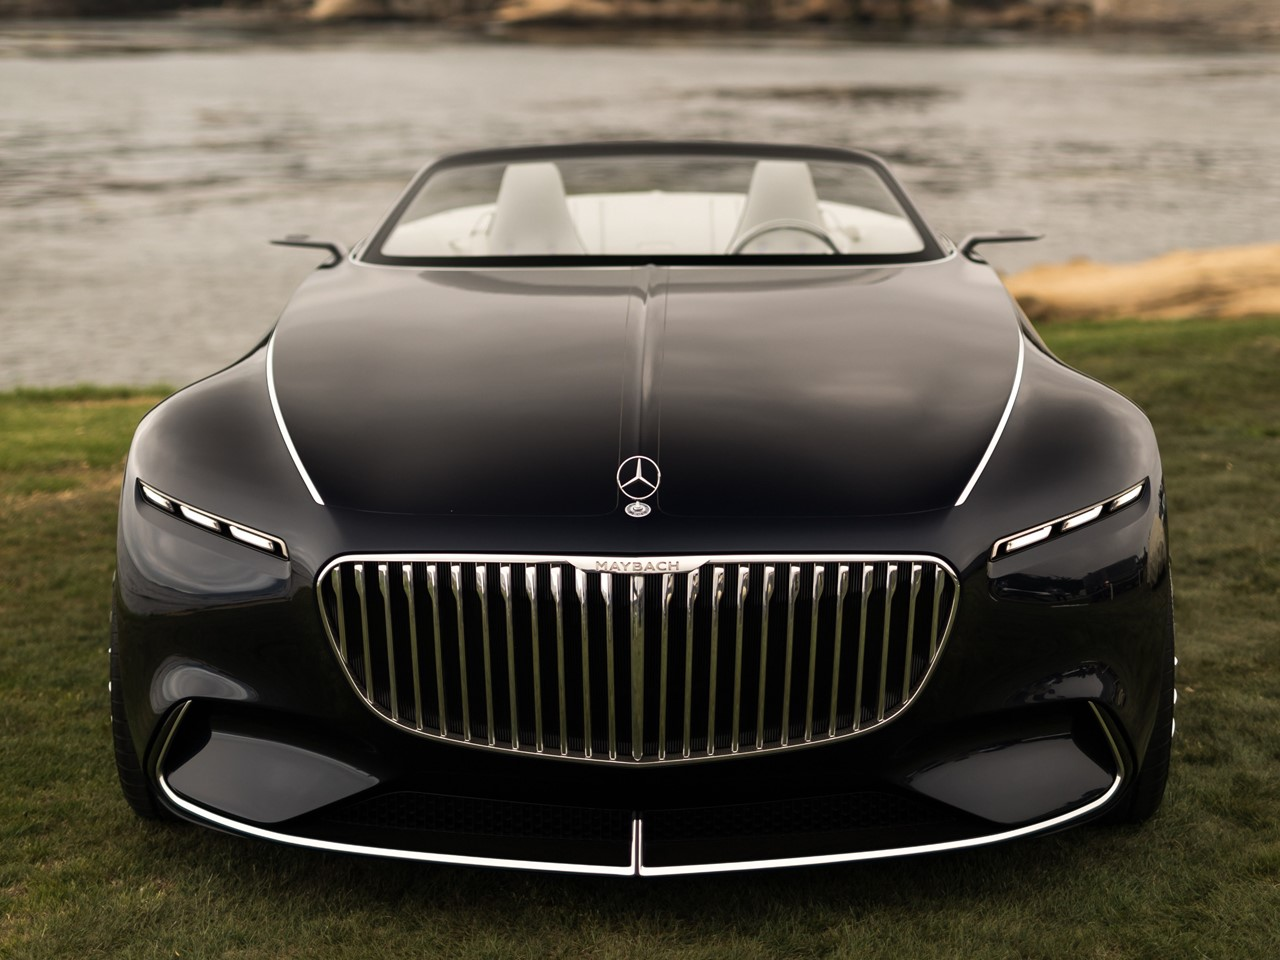 Mercedes-Maybach 5